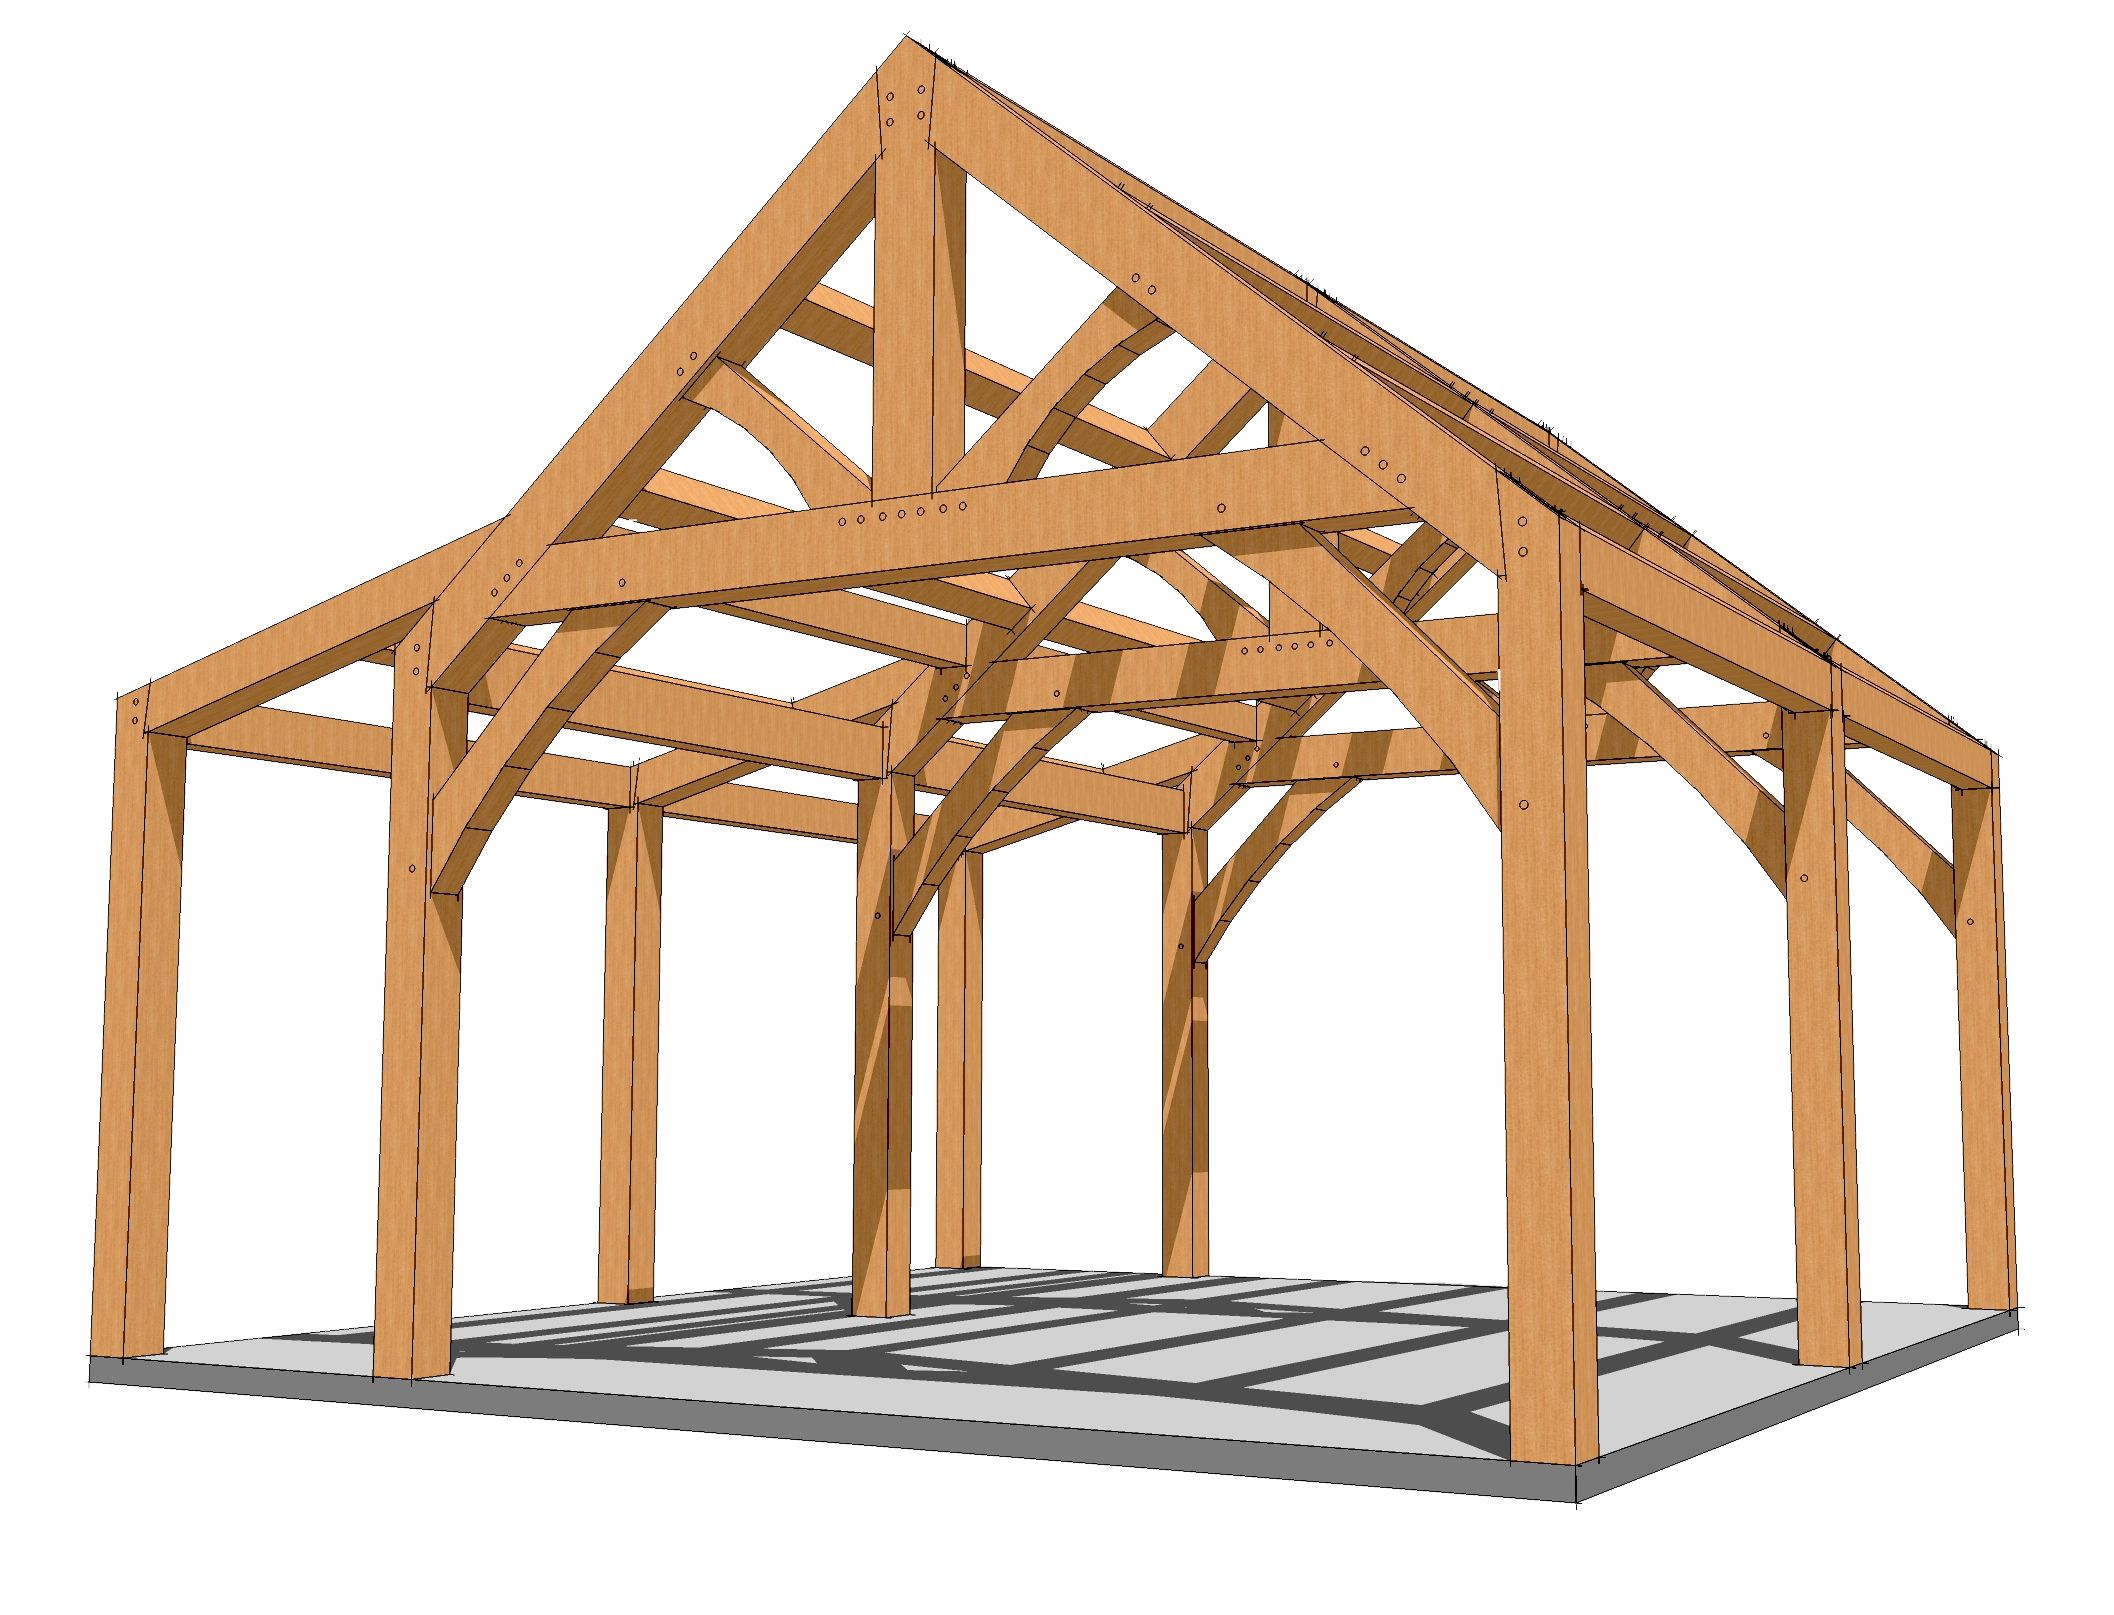 20x20 Timber Frame Plan In 2020 Timber Frame Cabin Pole